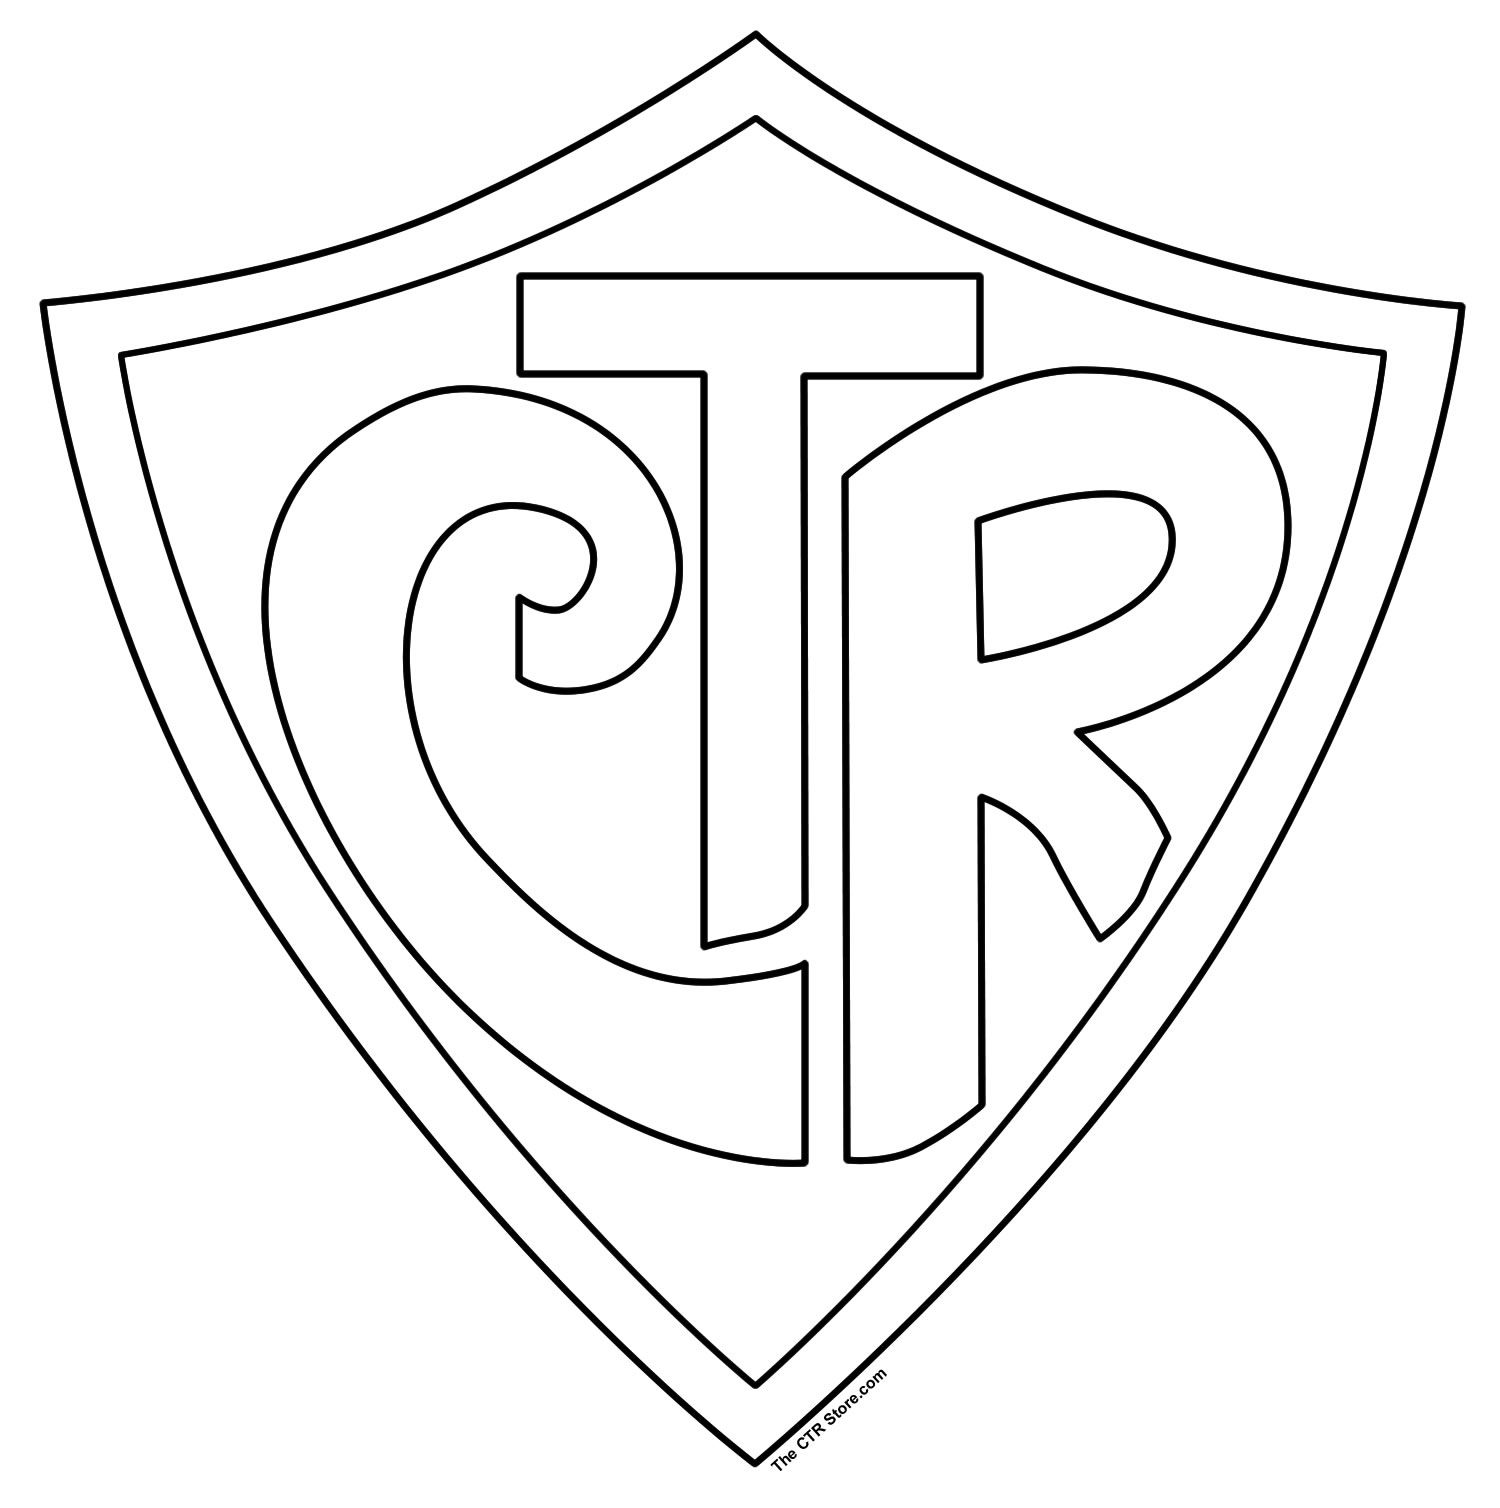 CTR Shield Coloring Page.